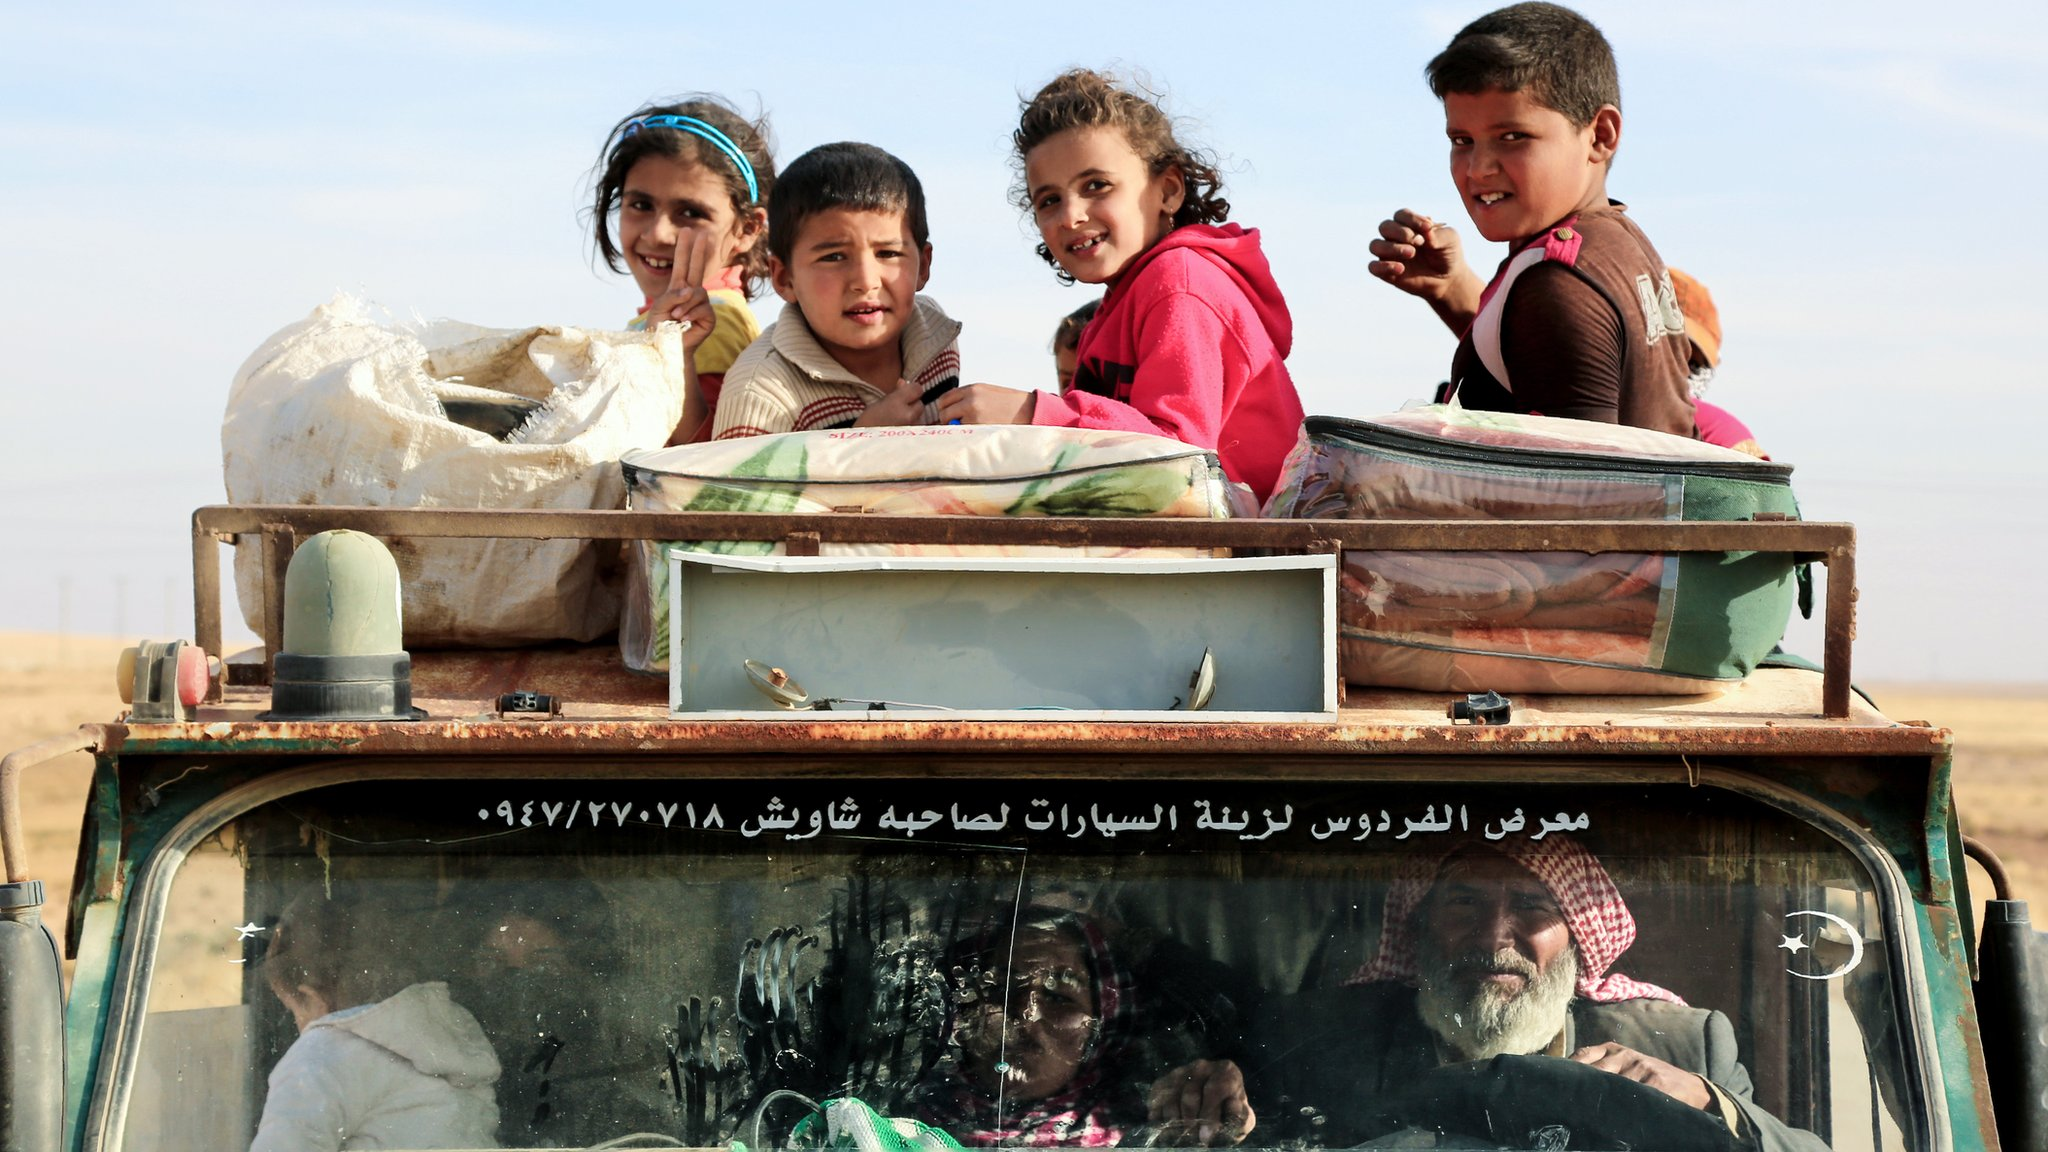 Children sit on top of a truck carrying Syrian refugees